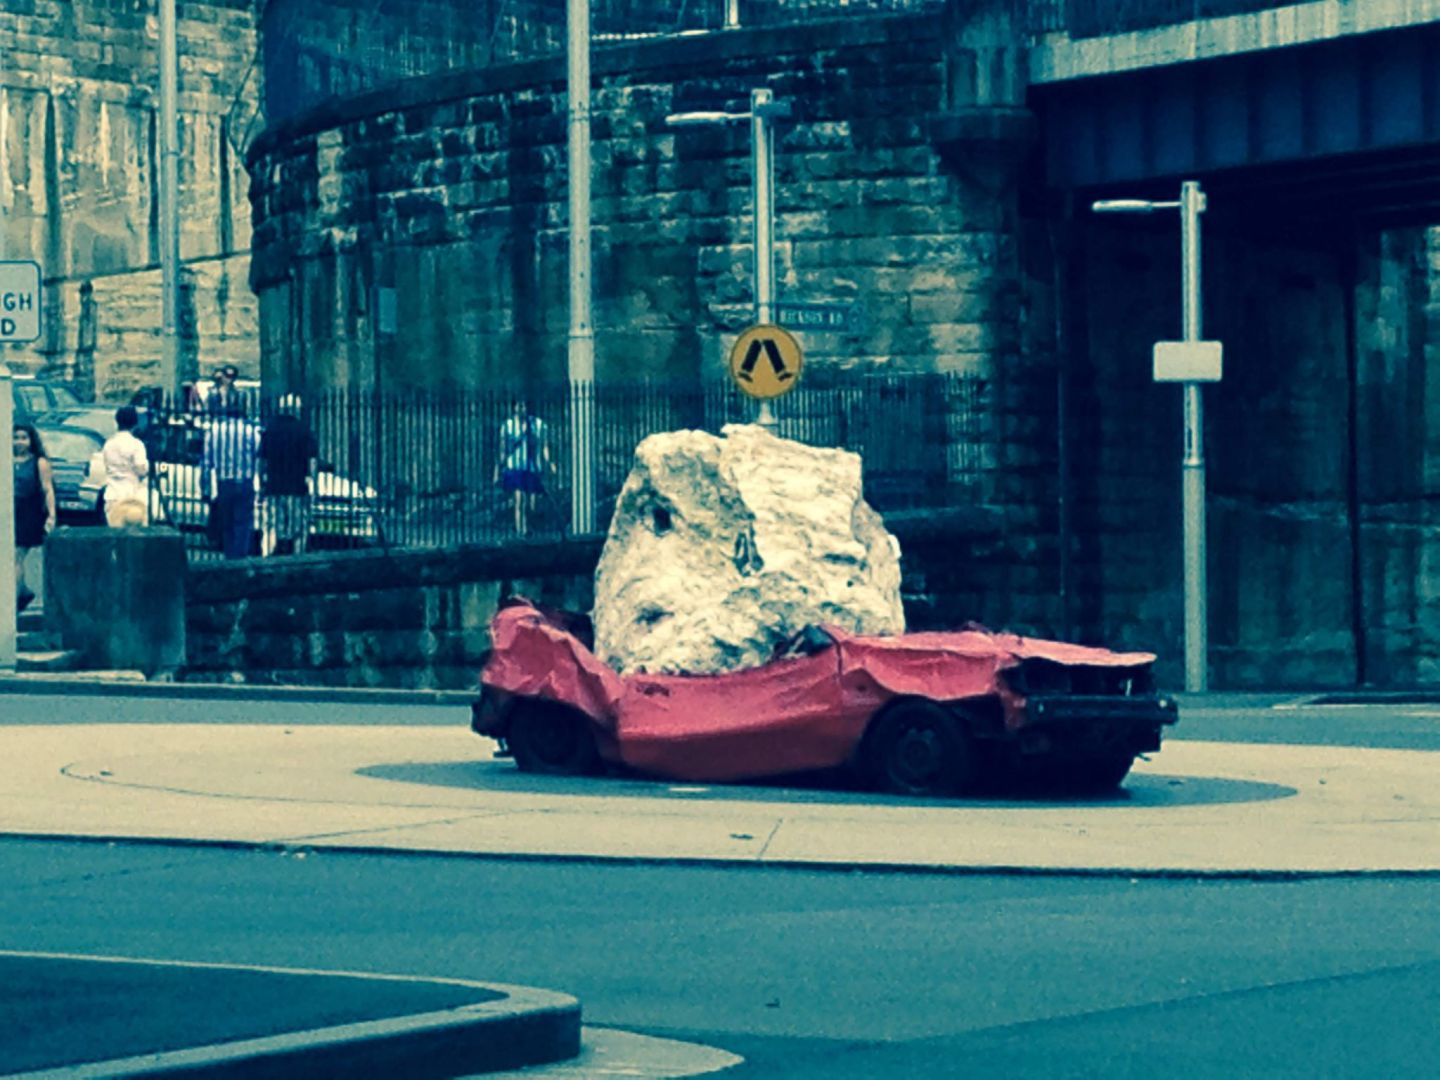 A car crushed by a rock near the Harbour Bridge